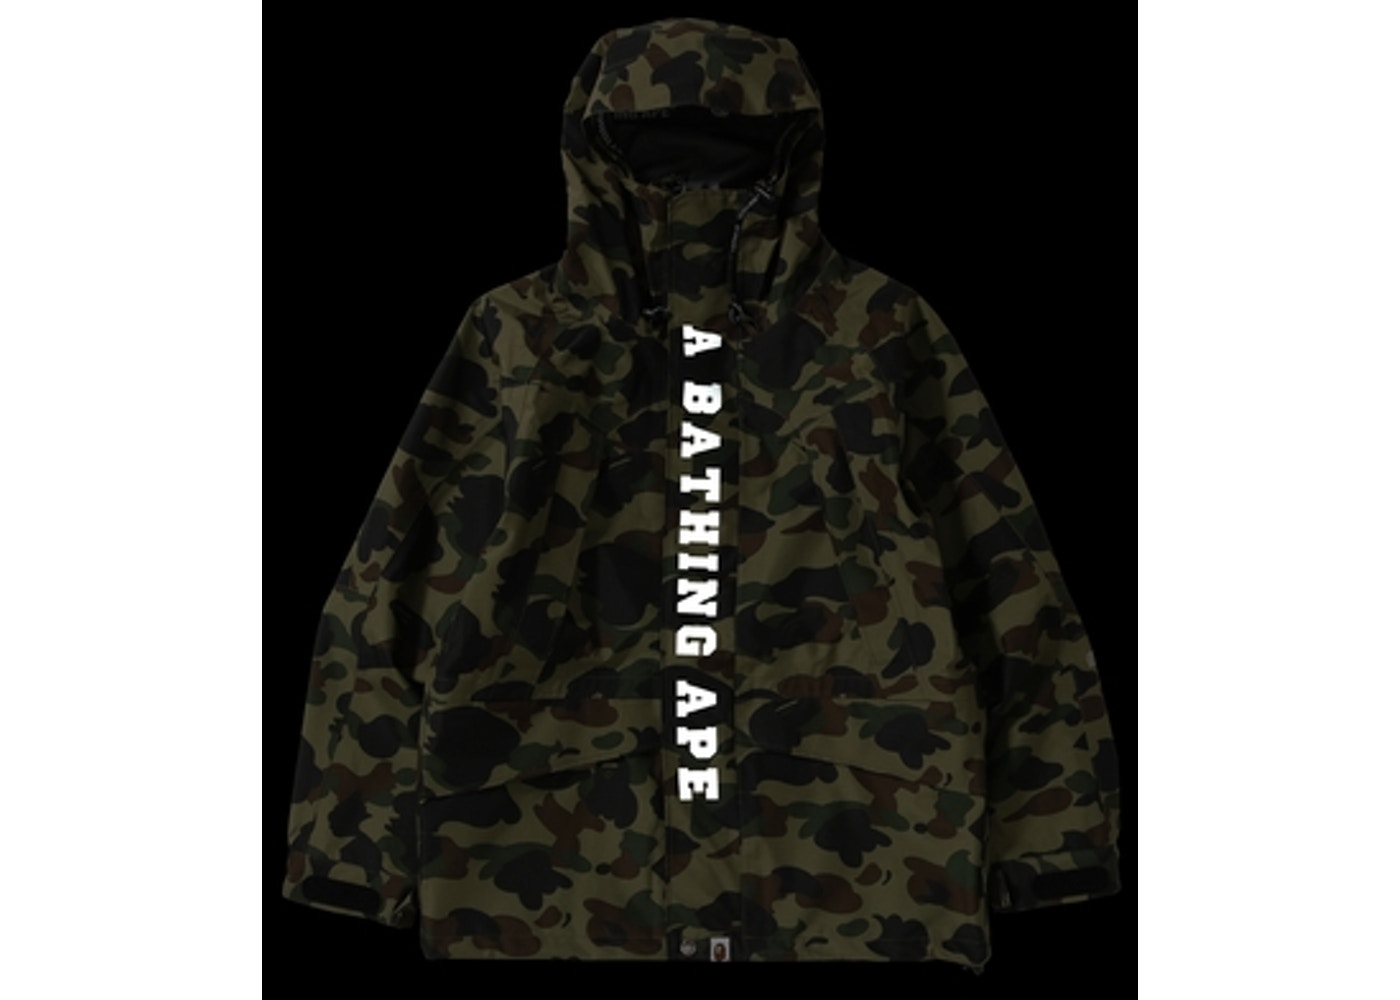 9ecb4216b Streetwear - Bape Jackets - Average Sale Price